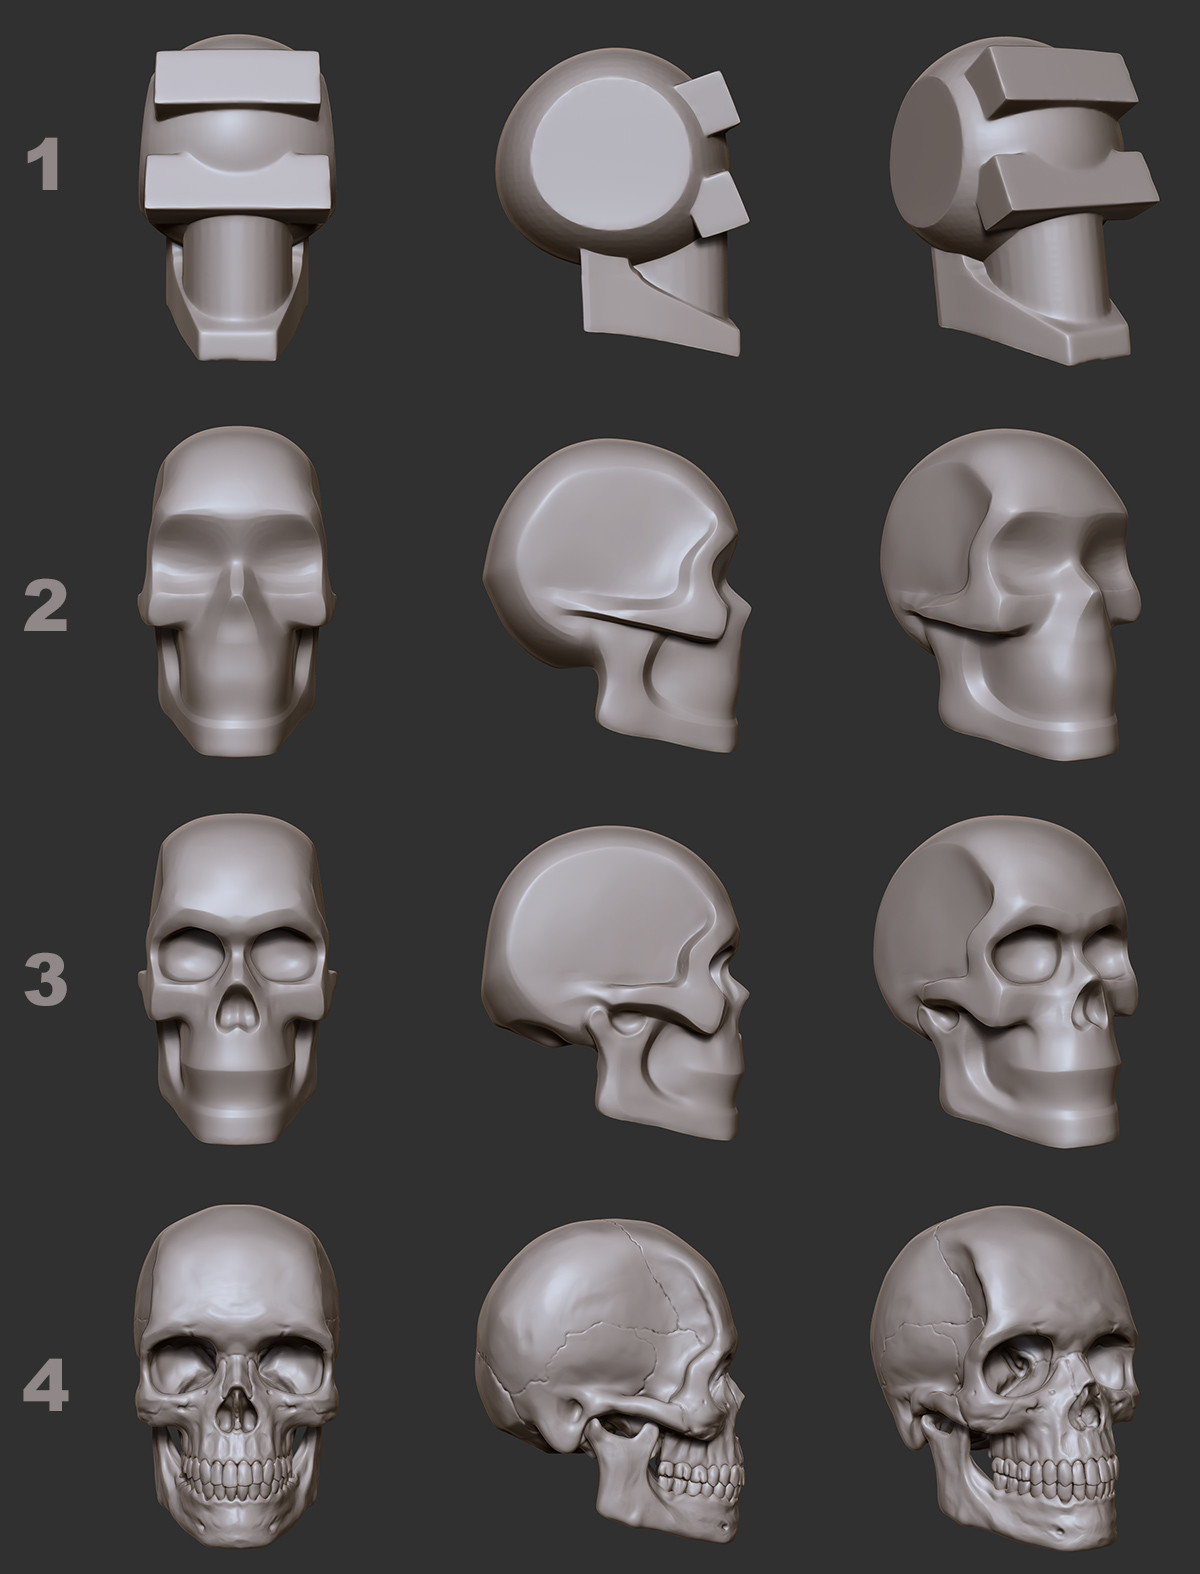 This is the process I used for sculpting the skull.  I learned this approach from Kris Costa during an online course.